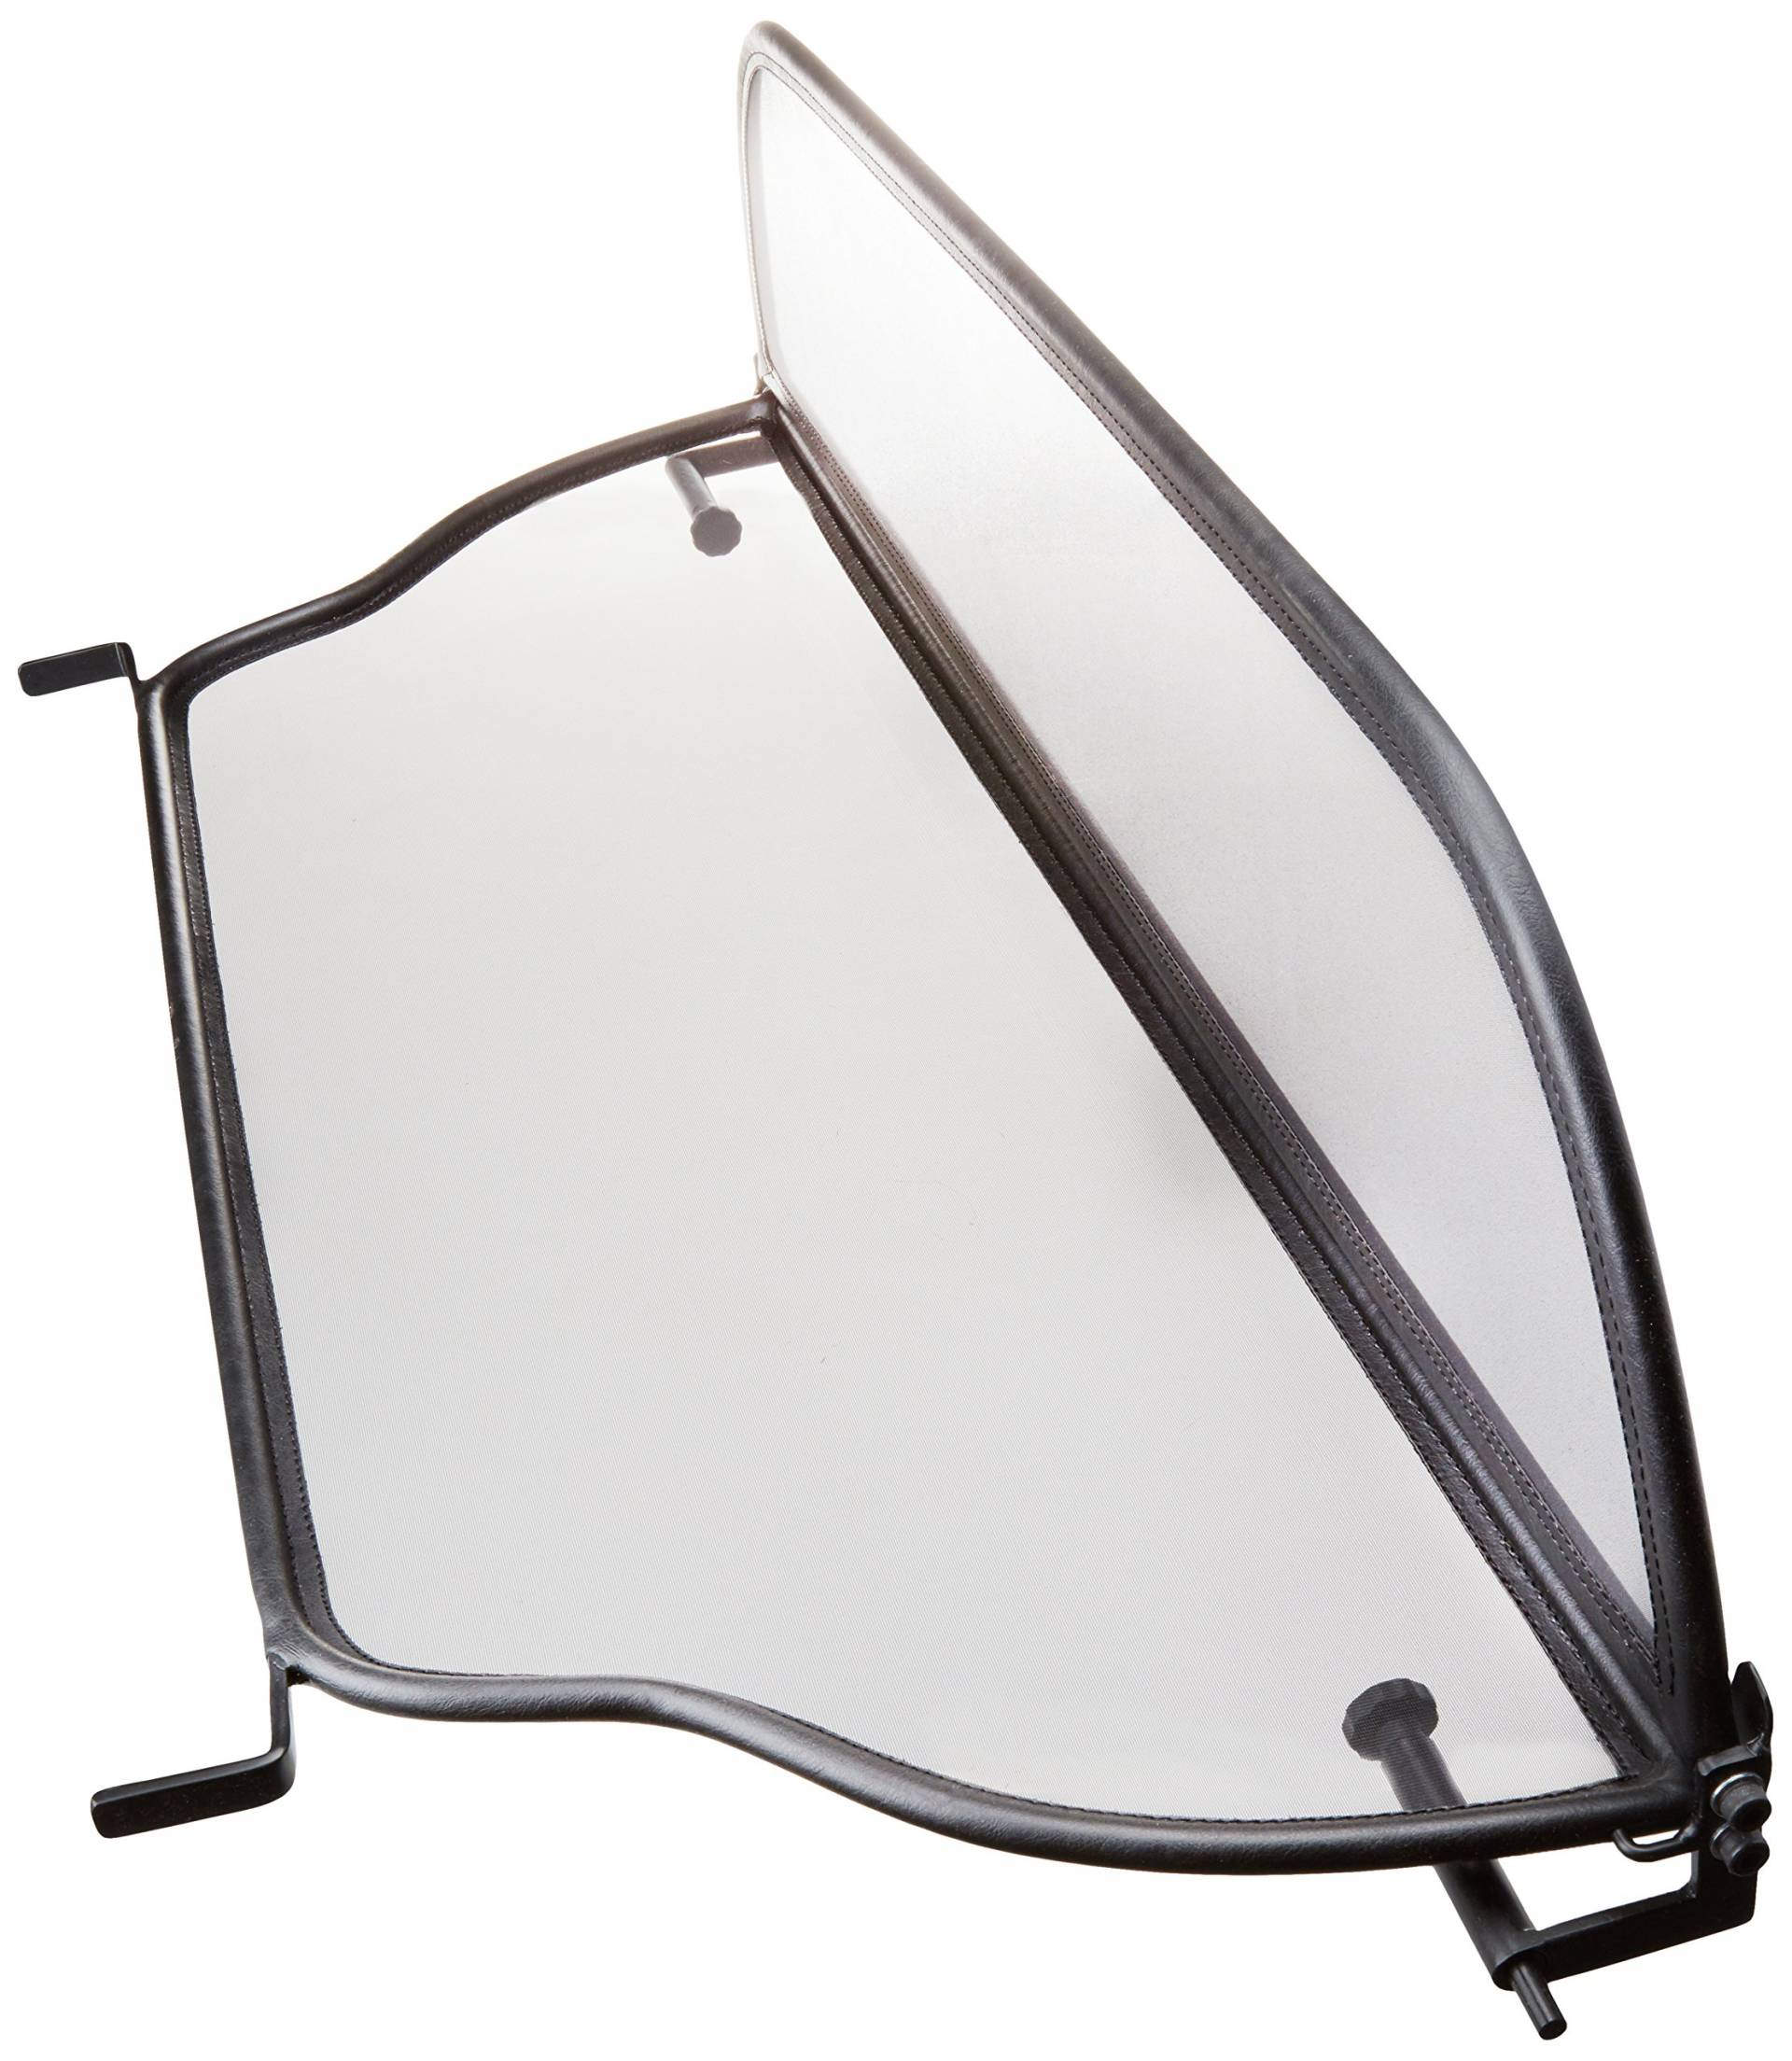 Autostyle Wieland 1062 Custom-Fit Cabrio Wind Shield